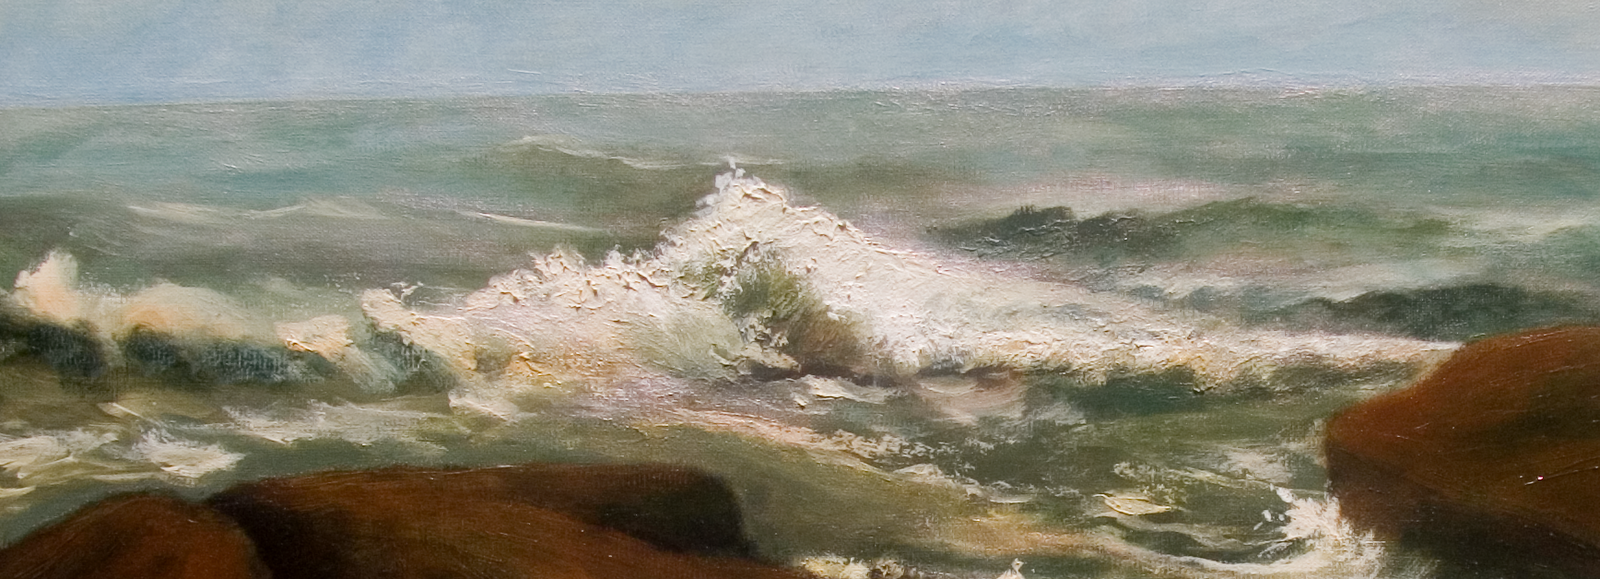 Connecticut watercolor artists directory - The Long Island Sound Is Usually Placid With A Gentle Ebb And Flow Of Tides Rippling Water And Baby Waves But During Our Recent Nor Easter Back In March